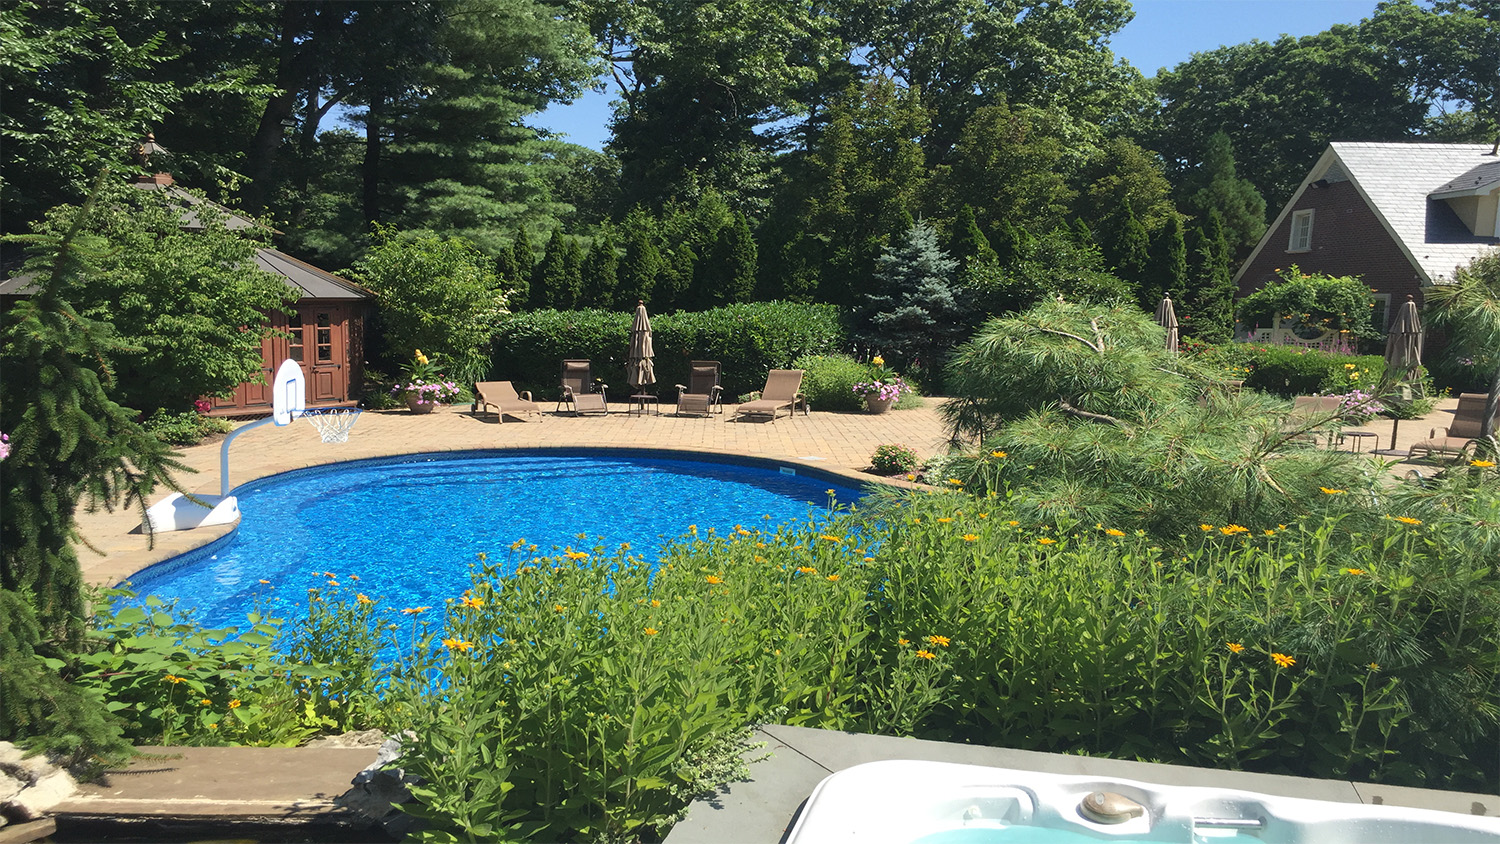 Professional landscape design company with pool area in Long Island, NY